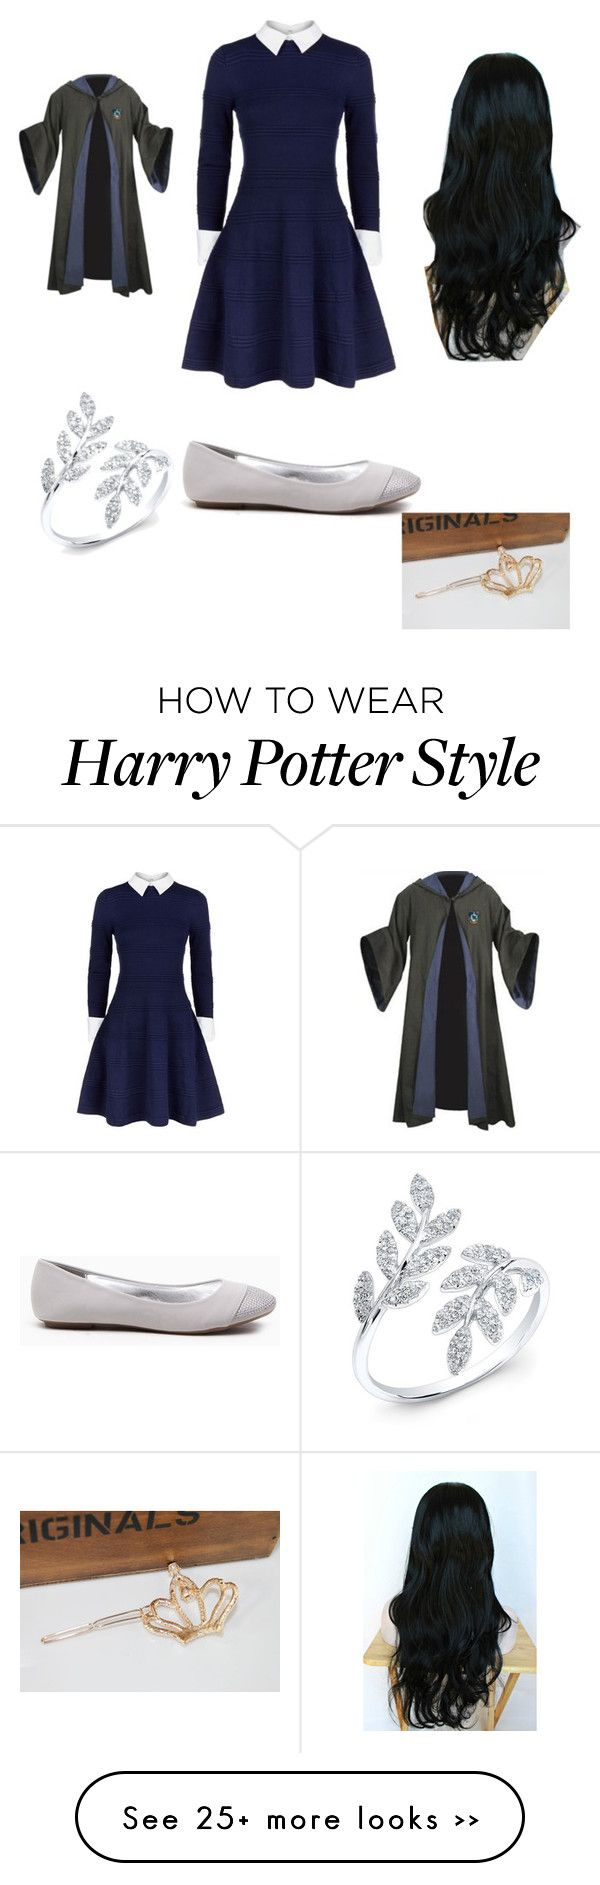 """Harry Potter: Ravenclaw"" by friends-forever-and-always on Polyvore featuring Mode und Alice + Olivia"